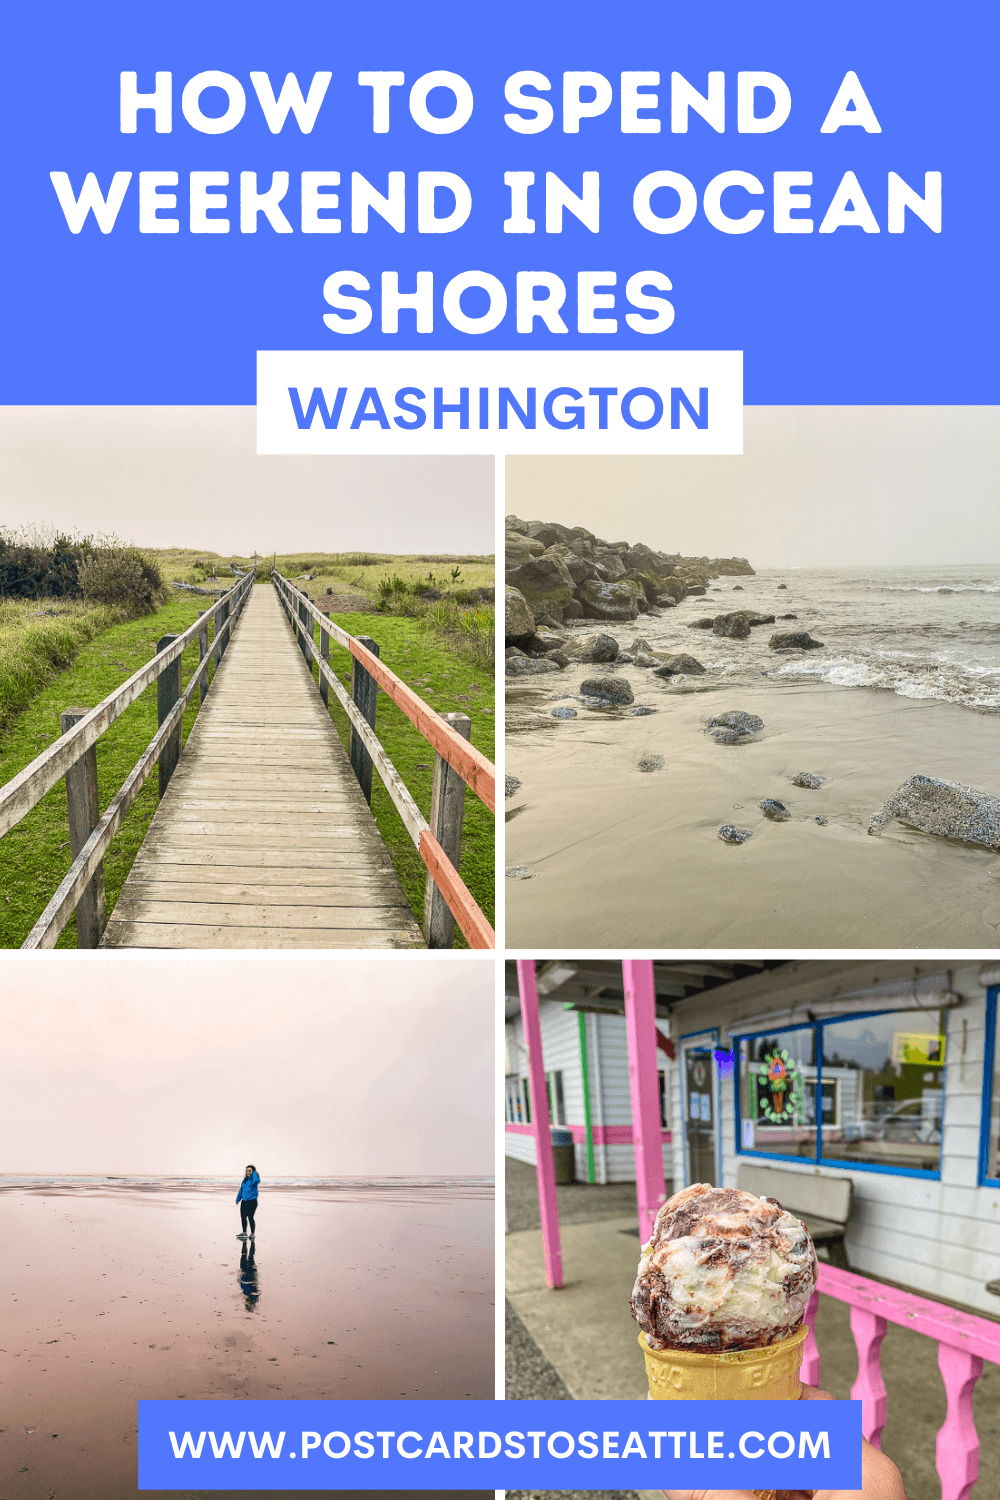 10 Exciting Things to Do in Ocean Shores, Washington